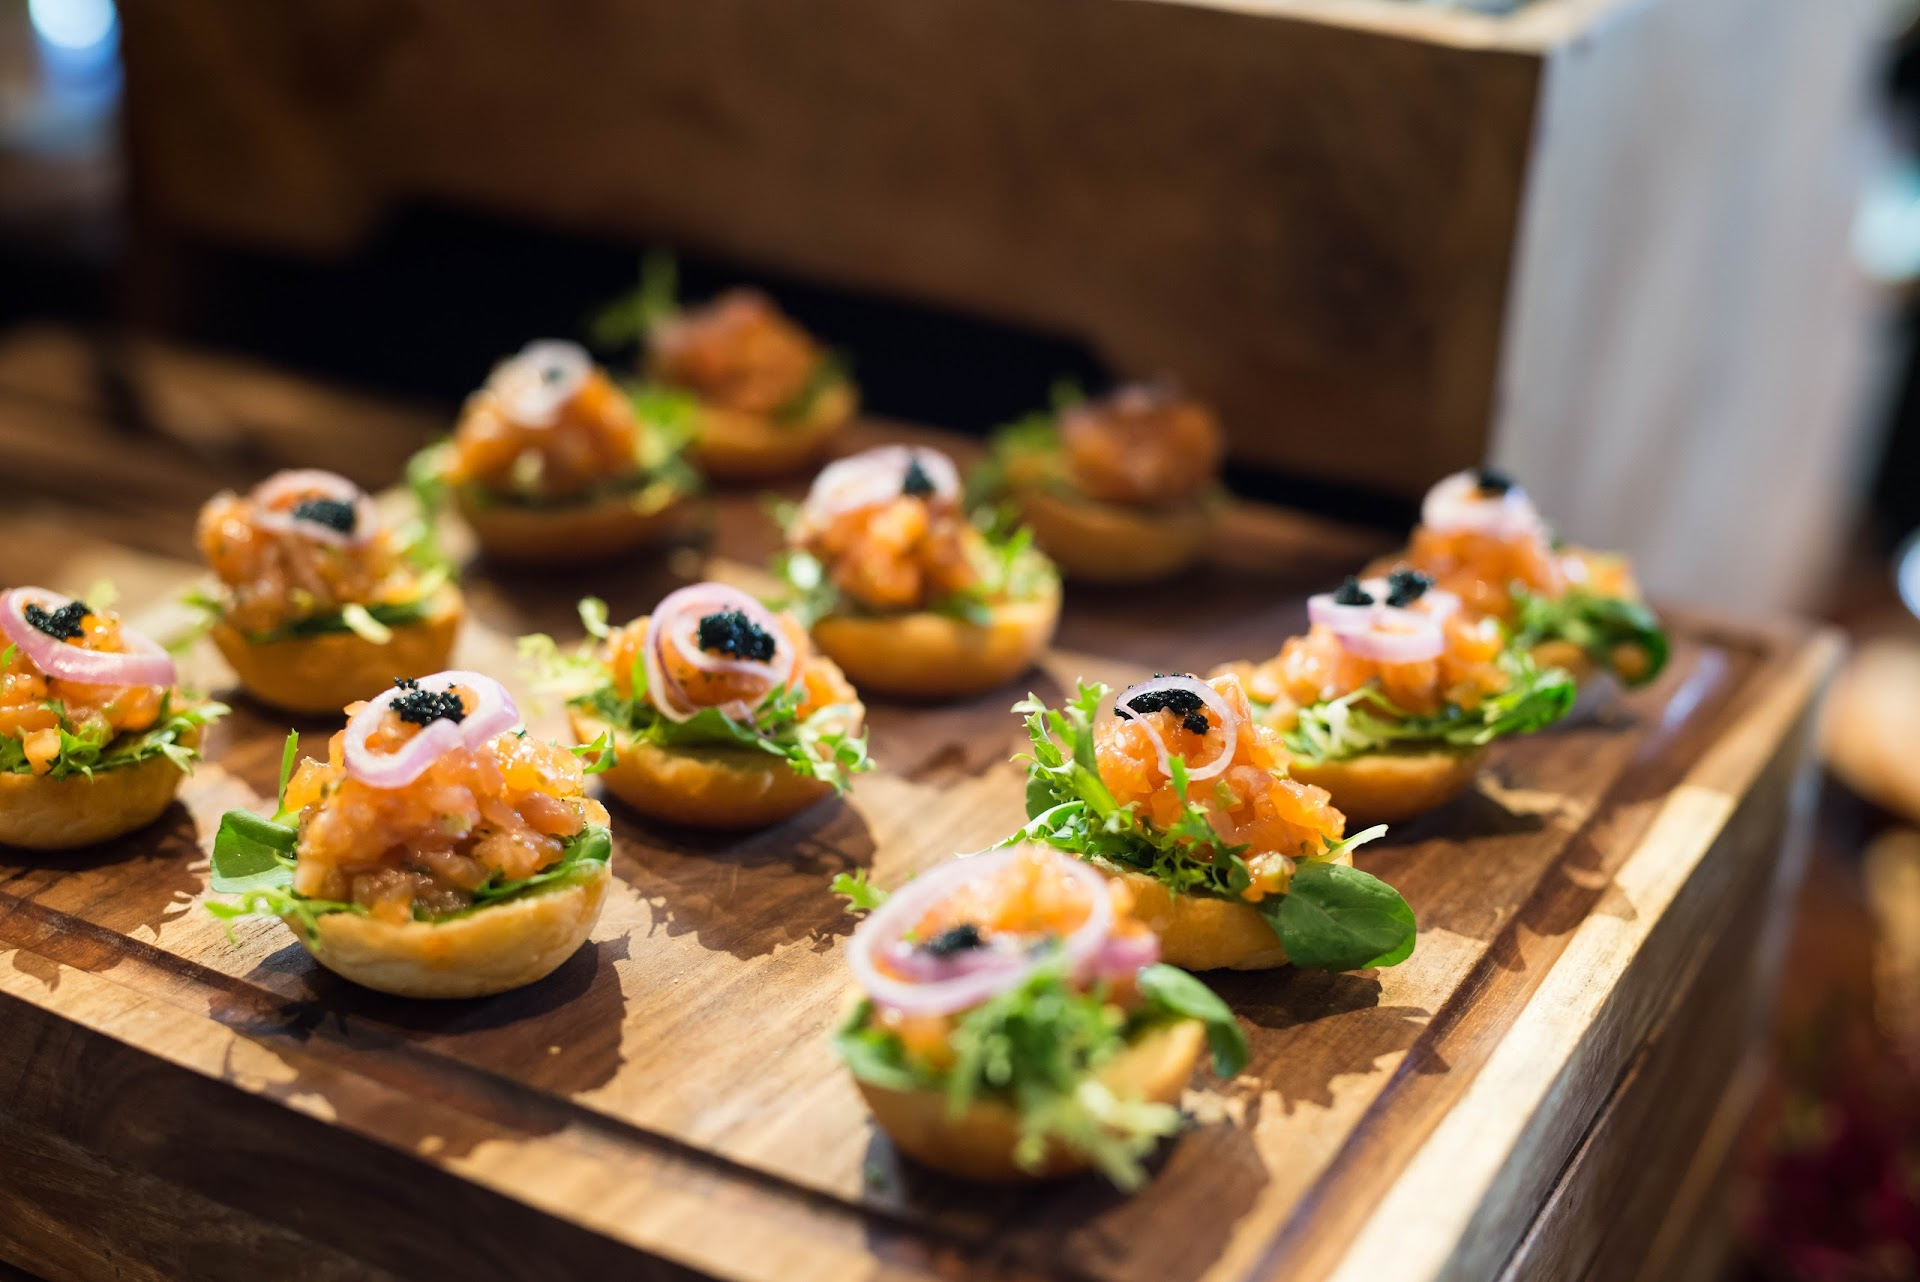 salmon tartare, hors d'oeuvres, small plates, what to eat in bali, nusa dua, sofitel resort hotel, luxury hotel, best buffets in the world, brunch